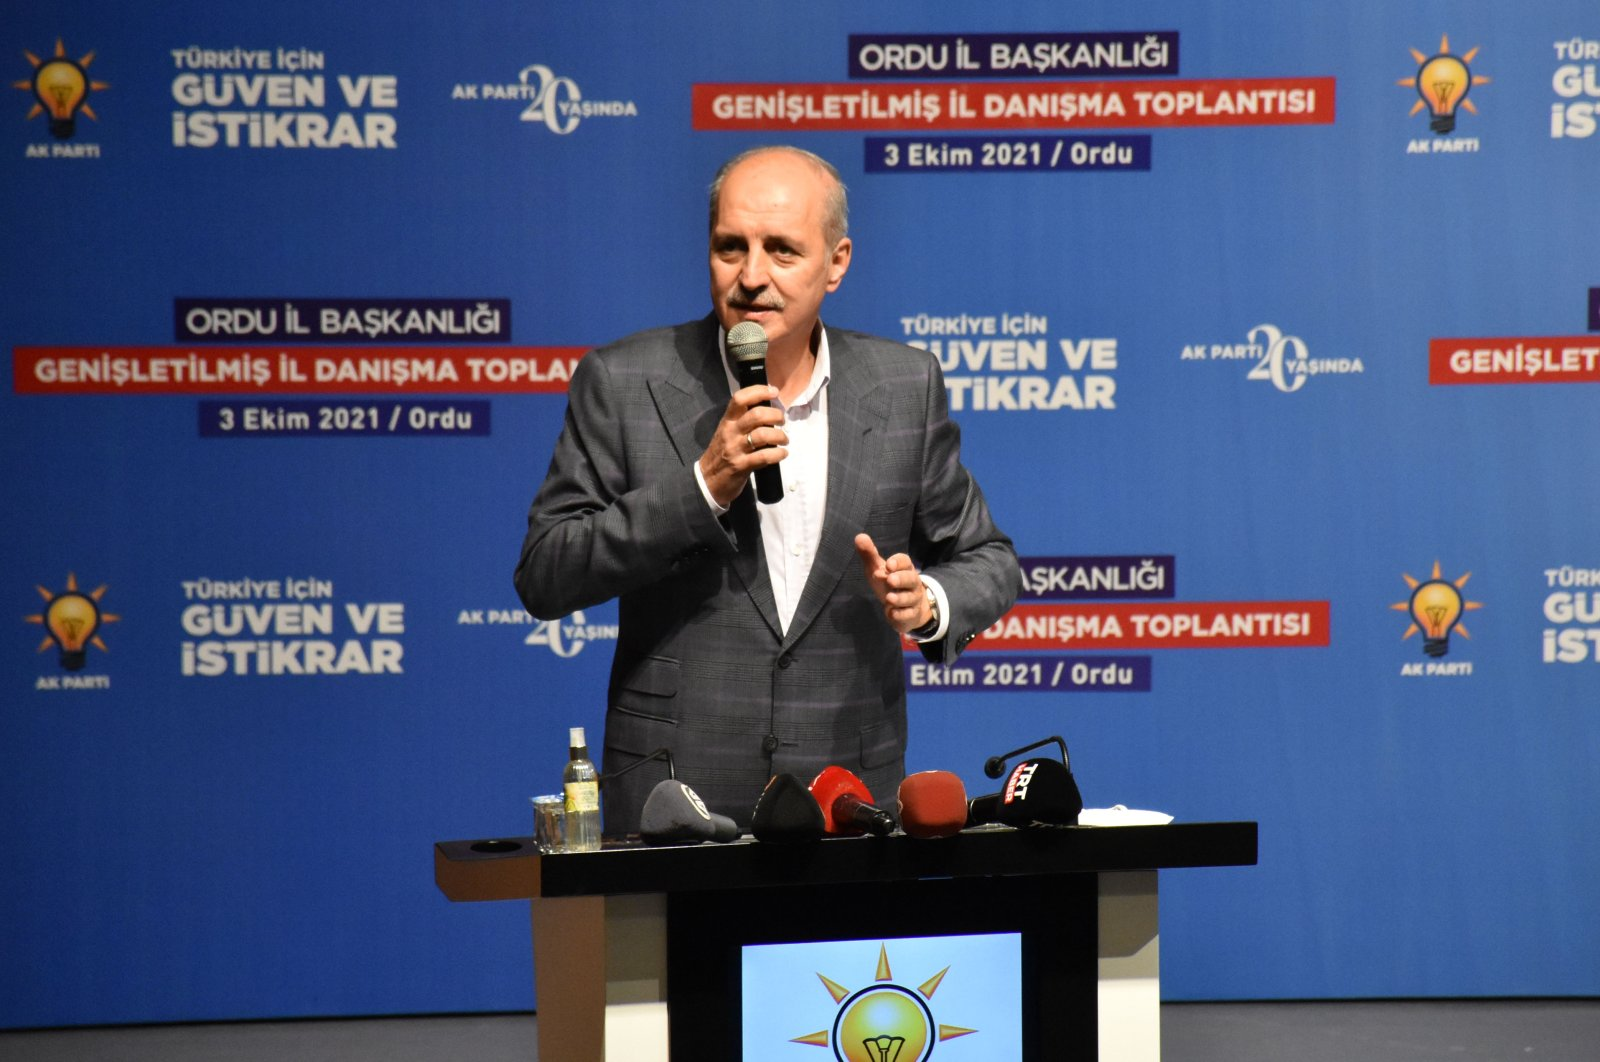 Numan Kurtulmuş, the ruling Justice and Development Party's (AK Party) deputy chair, speaks at a meeting in Ordu, northern Turkey, Oct. 3, 2021. (AA Photo)